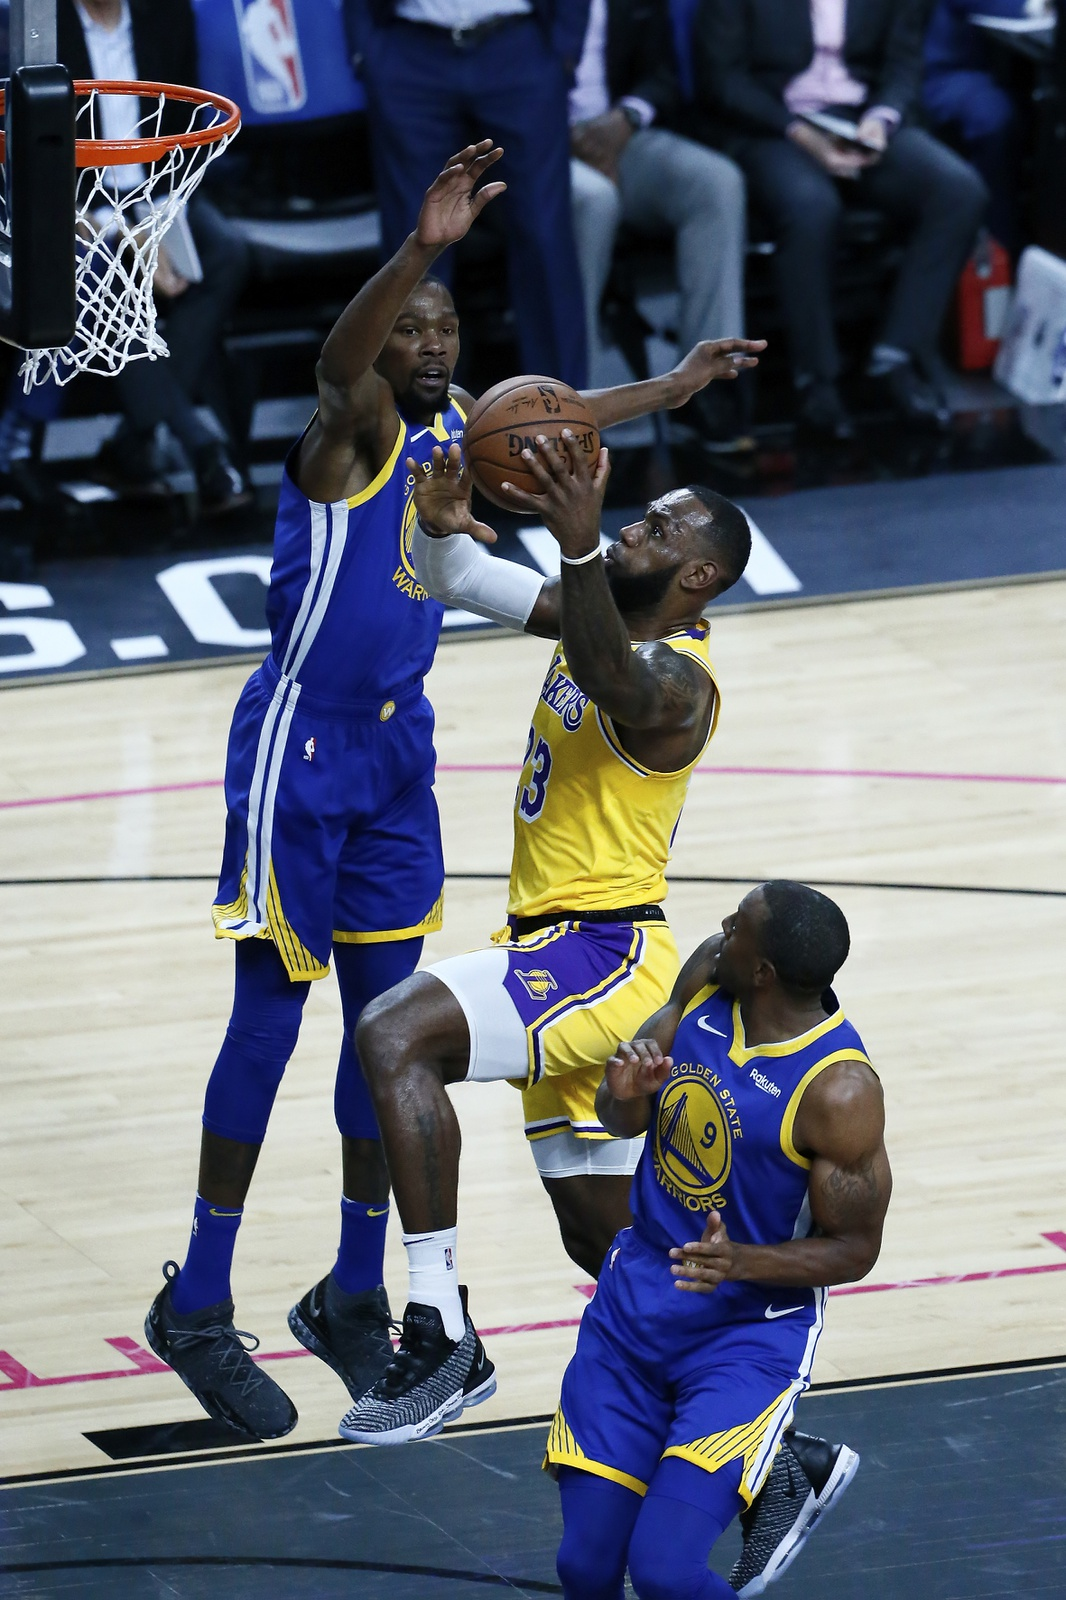 LeBron James #23 of the Los Angeles Lakers shoots the ball during the game against the Golden State Warriors on October 10, 2018 at T-Mobile Arena in Las Vegas, Nevada.